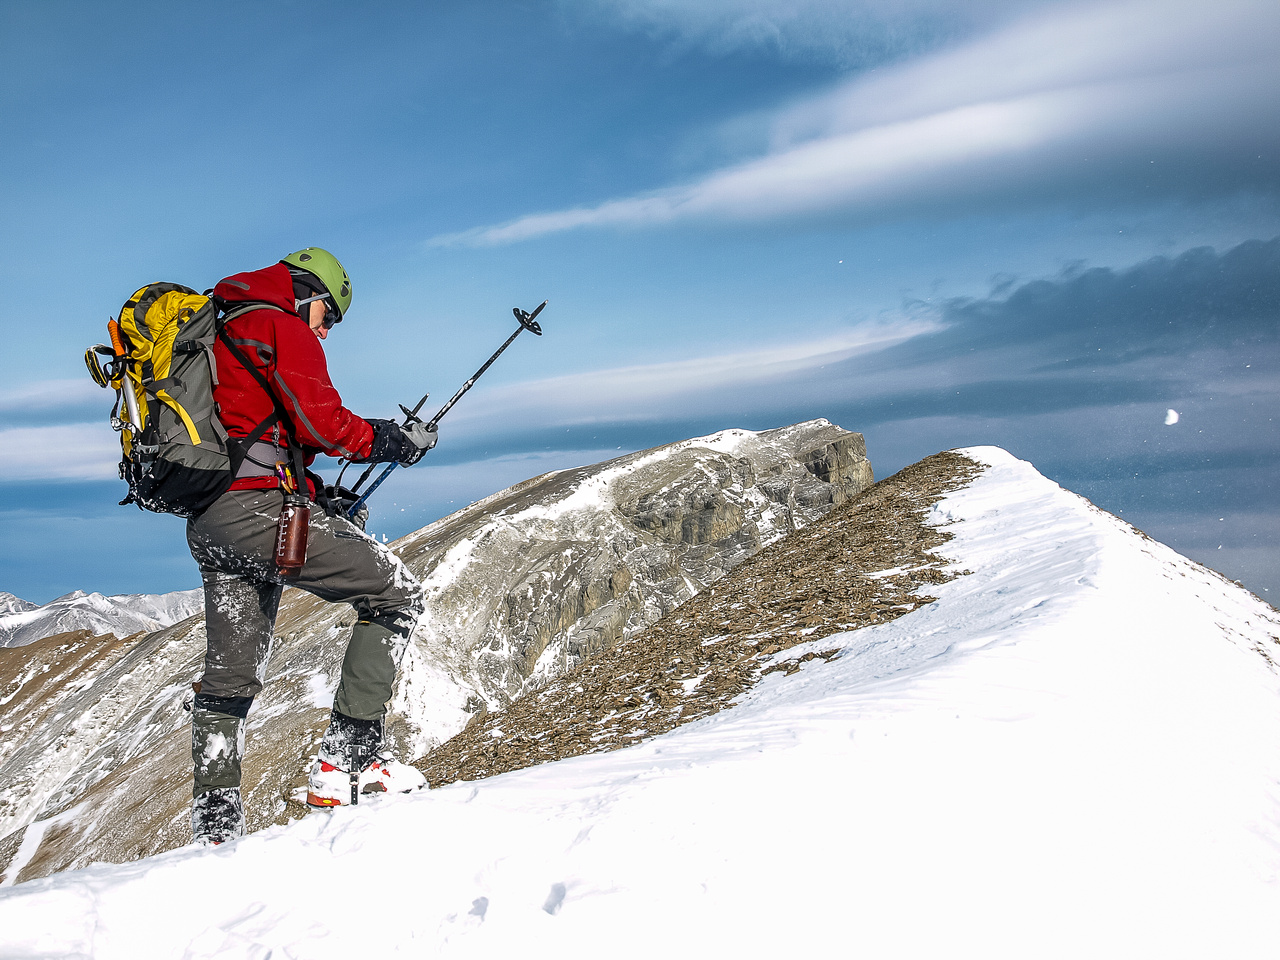 TJ adjusts his poles after taking off the crampons for the final summit push. You can see the snow flying through the air - it was windy!